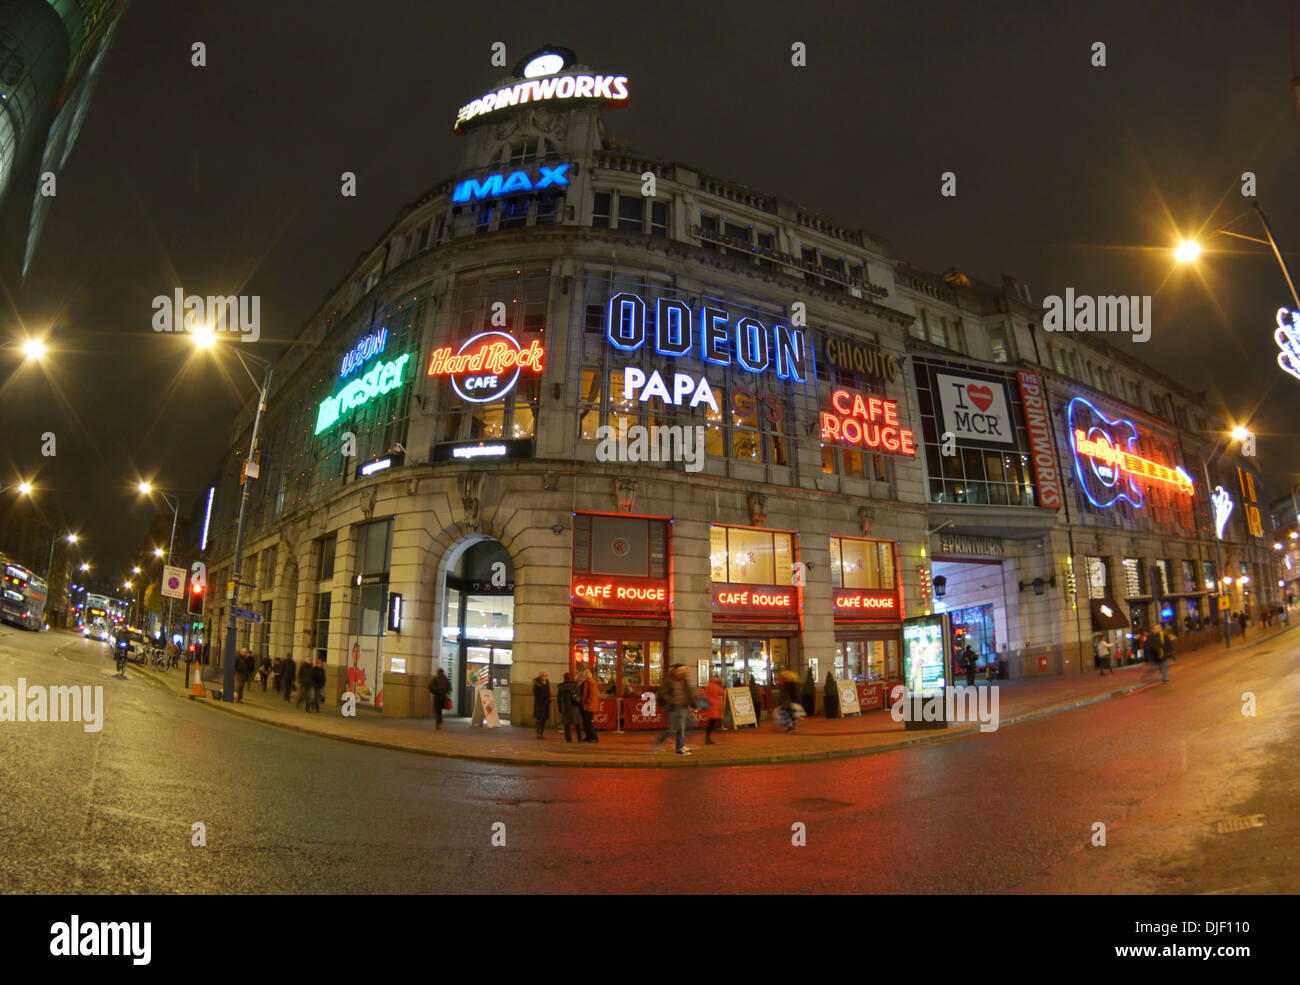 Printworks entertainment complex in Manchester - previously the headquarters of the Manchester Guardian newspaper. - Stock Image